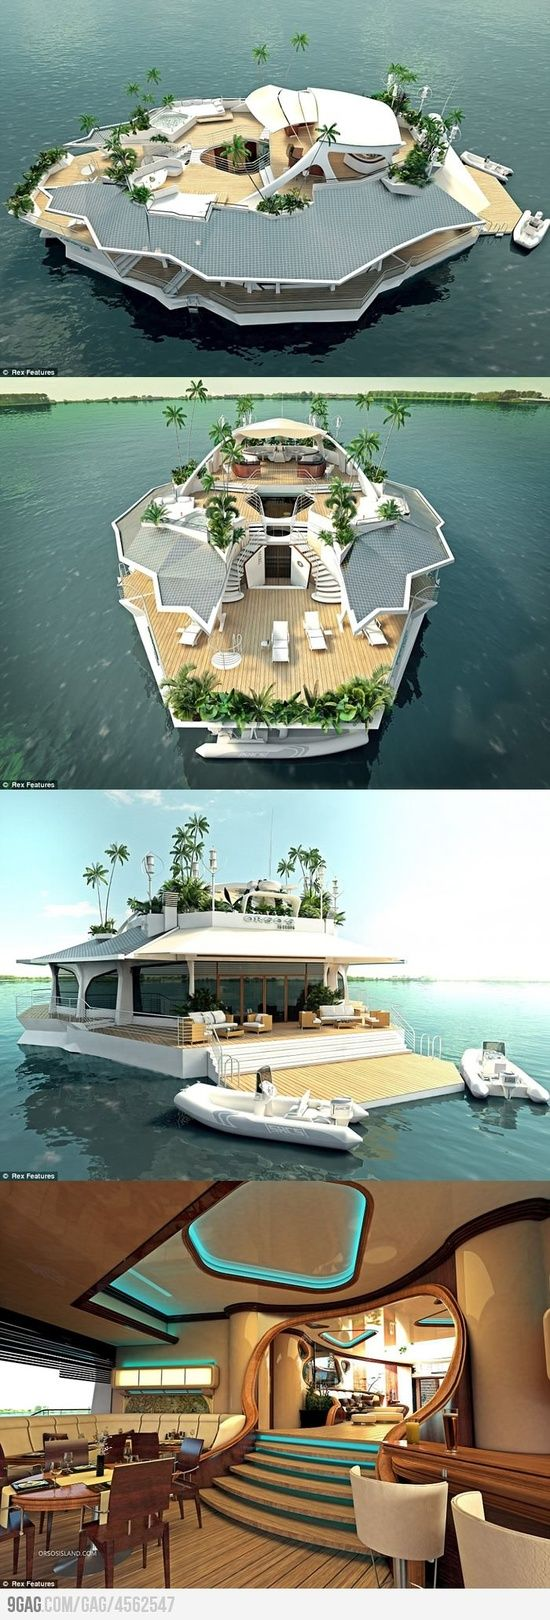 Dream style home on water. 2016